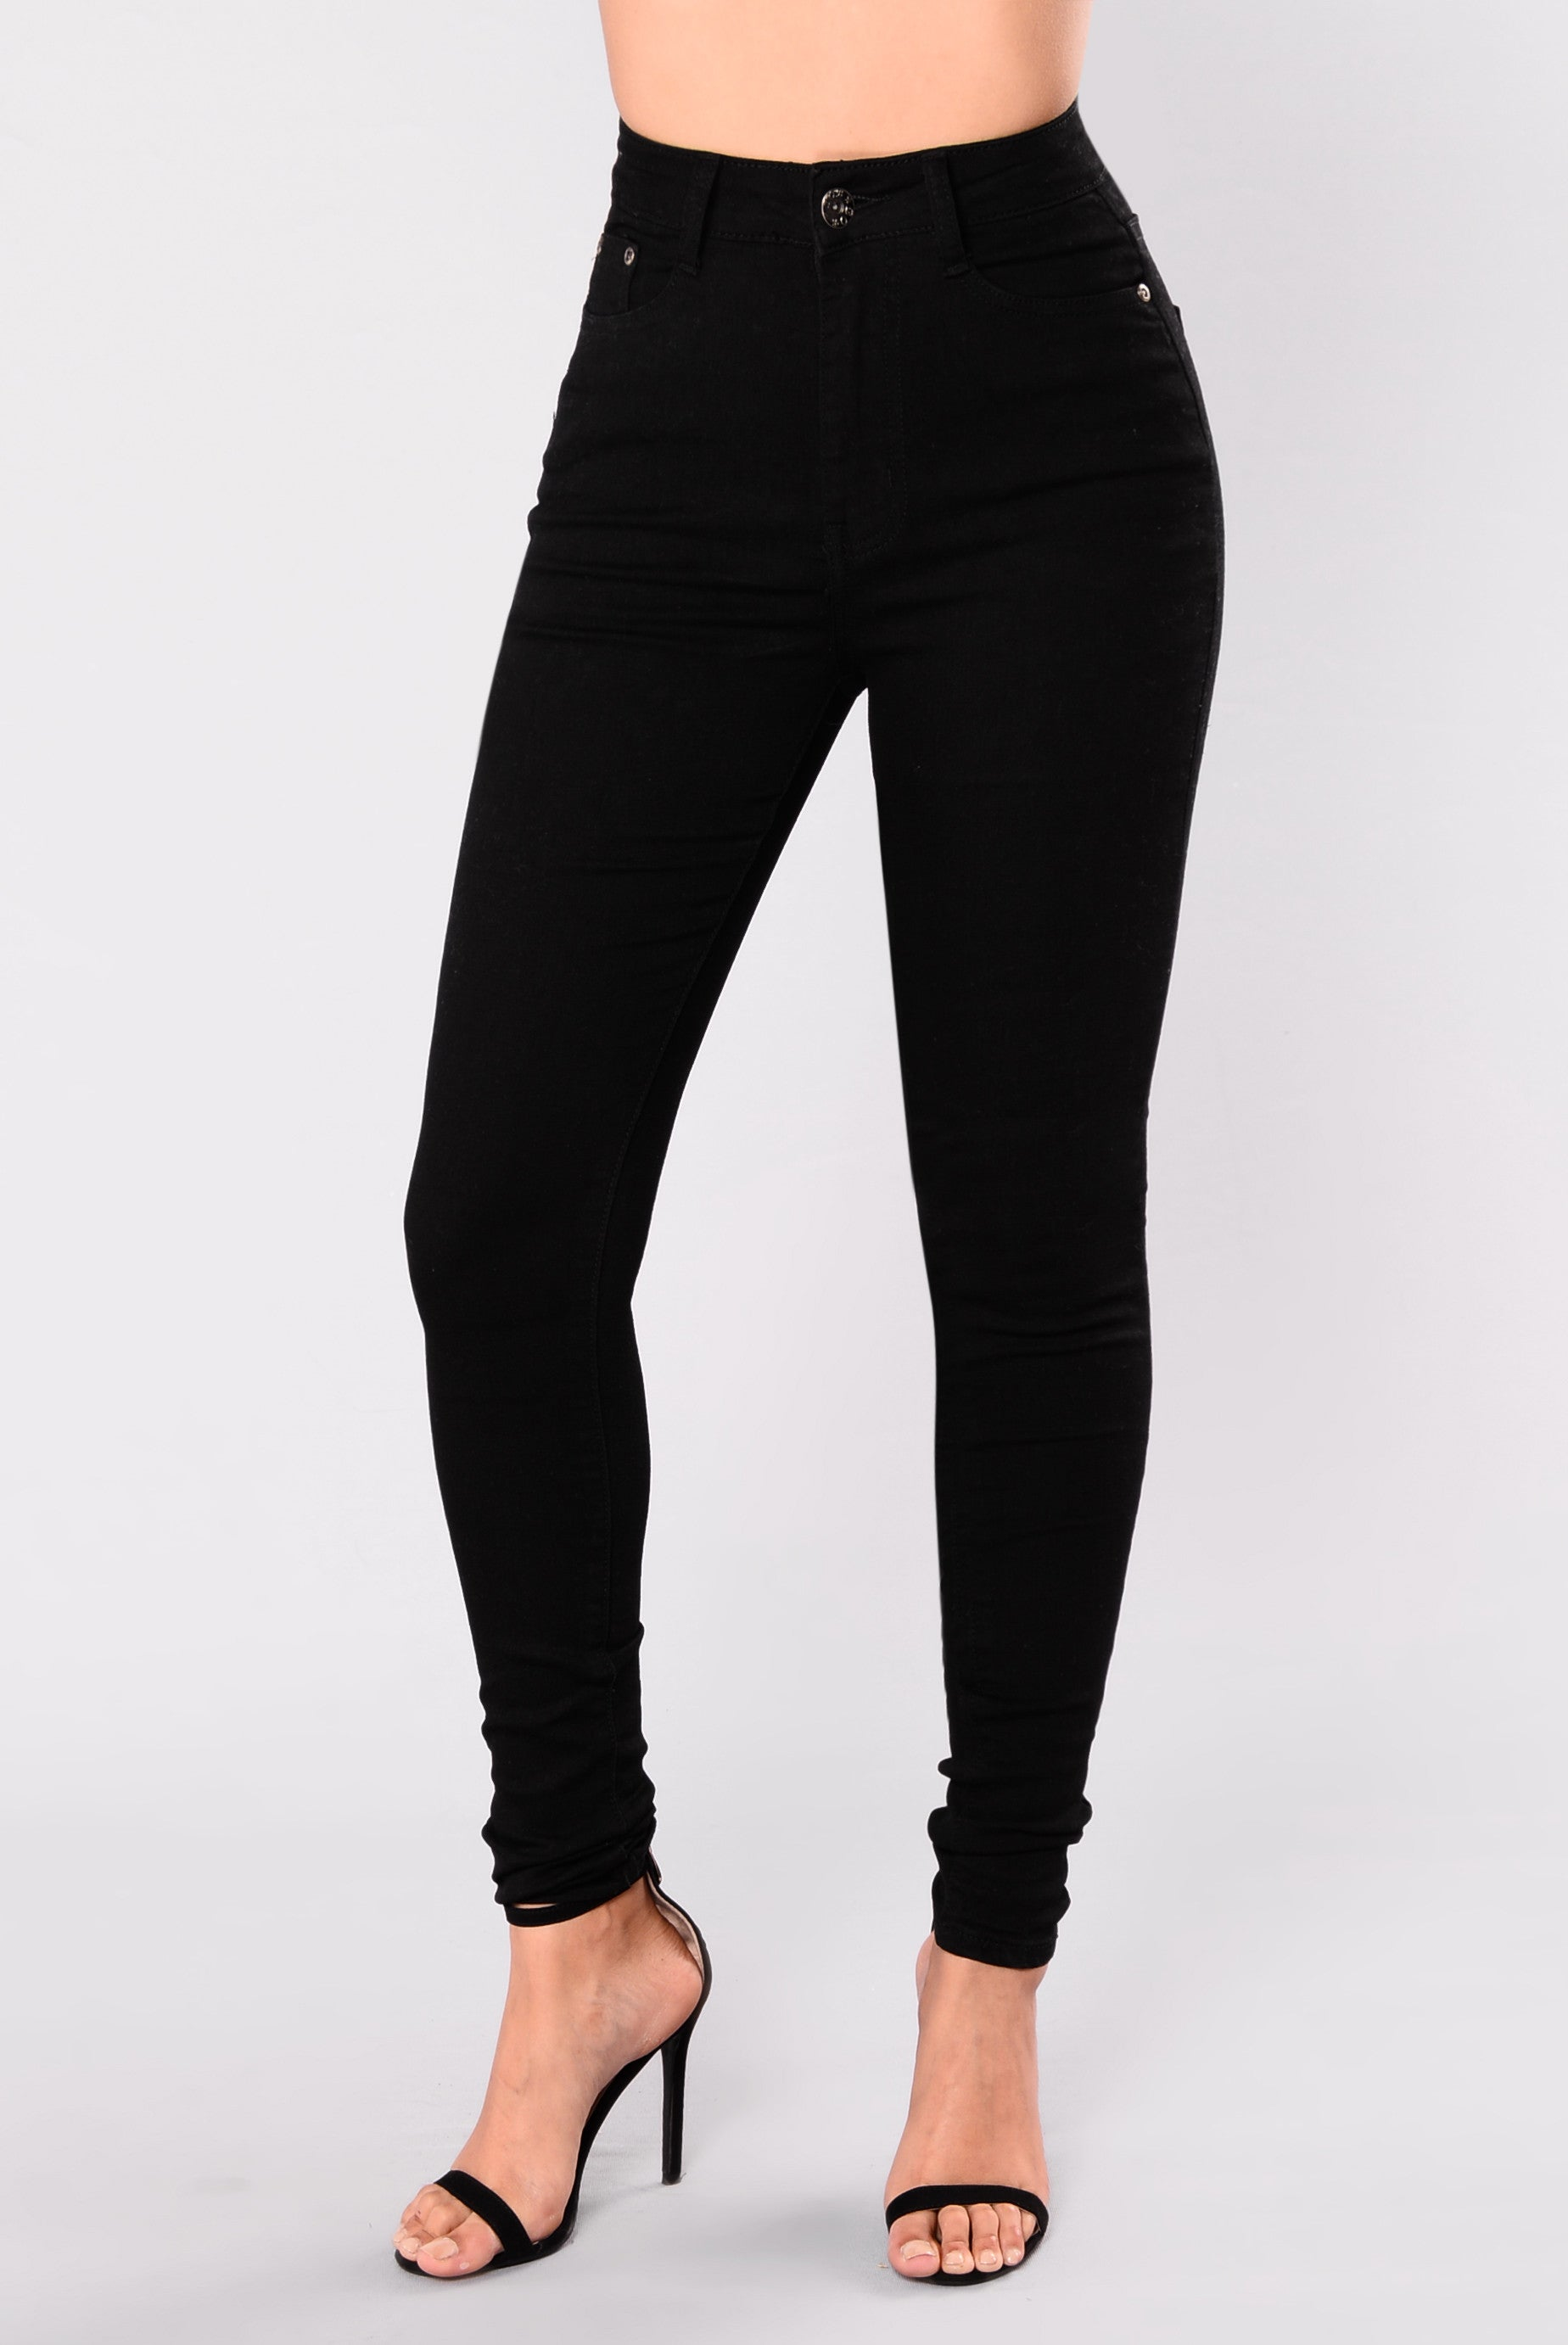 56e9f739b6c scottsdale high waist skinny jeans black rh fashionnova com high waisted  black jeans topshop high waisted black jeans topshop